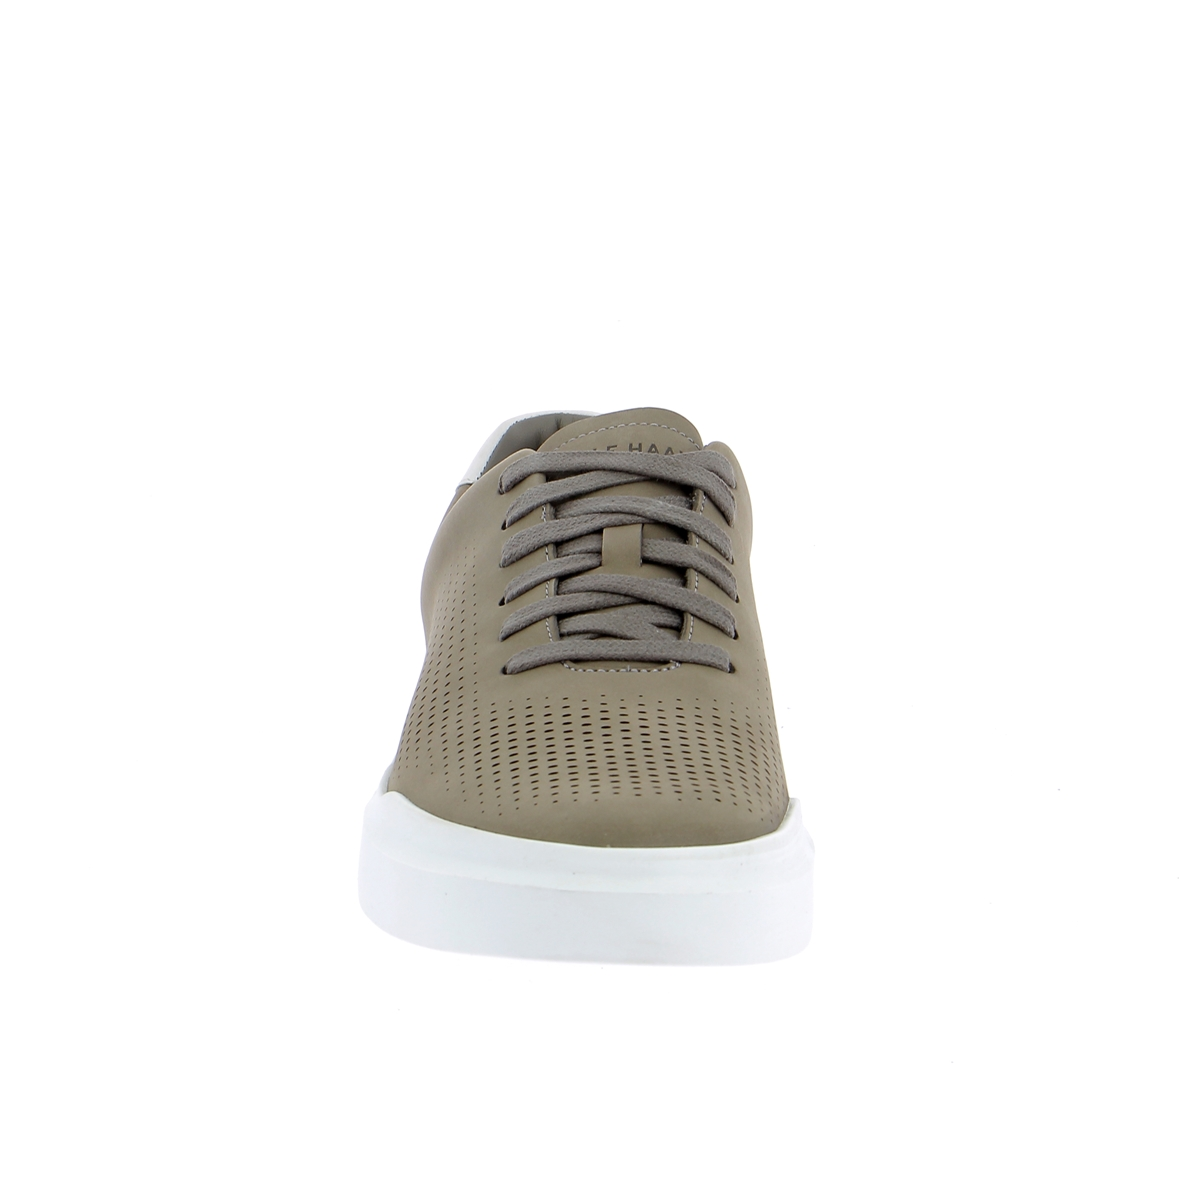 Cole Haan Basket taupe